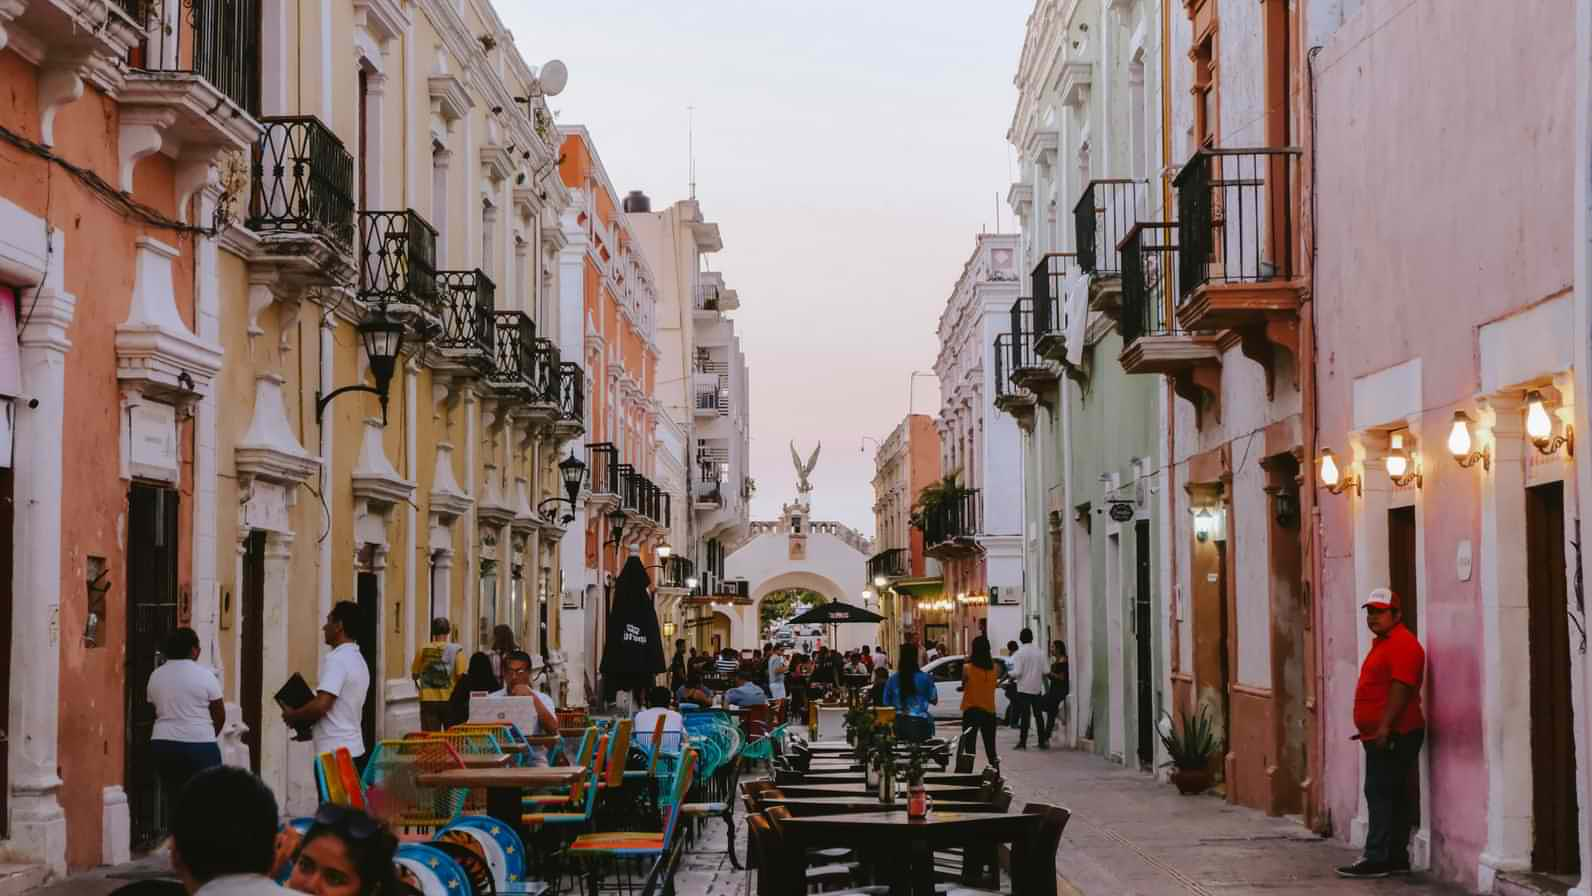 Campeche Old Town UNESCO World Heritage Site in Campeche, Mexico